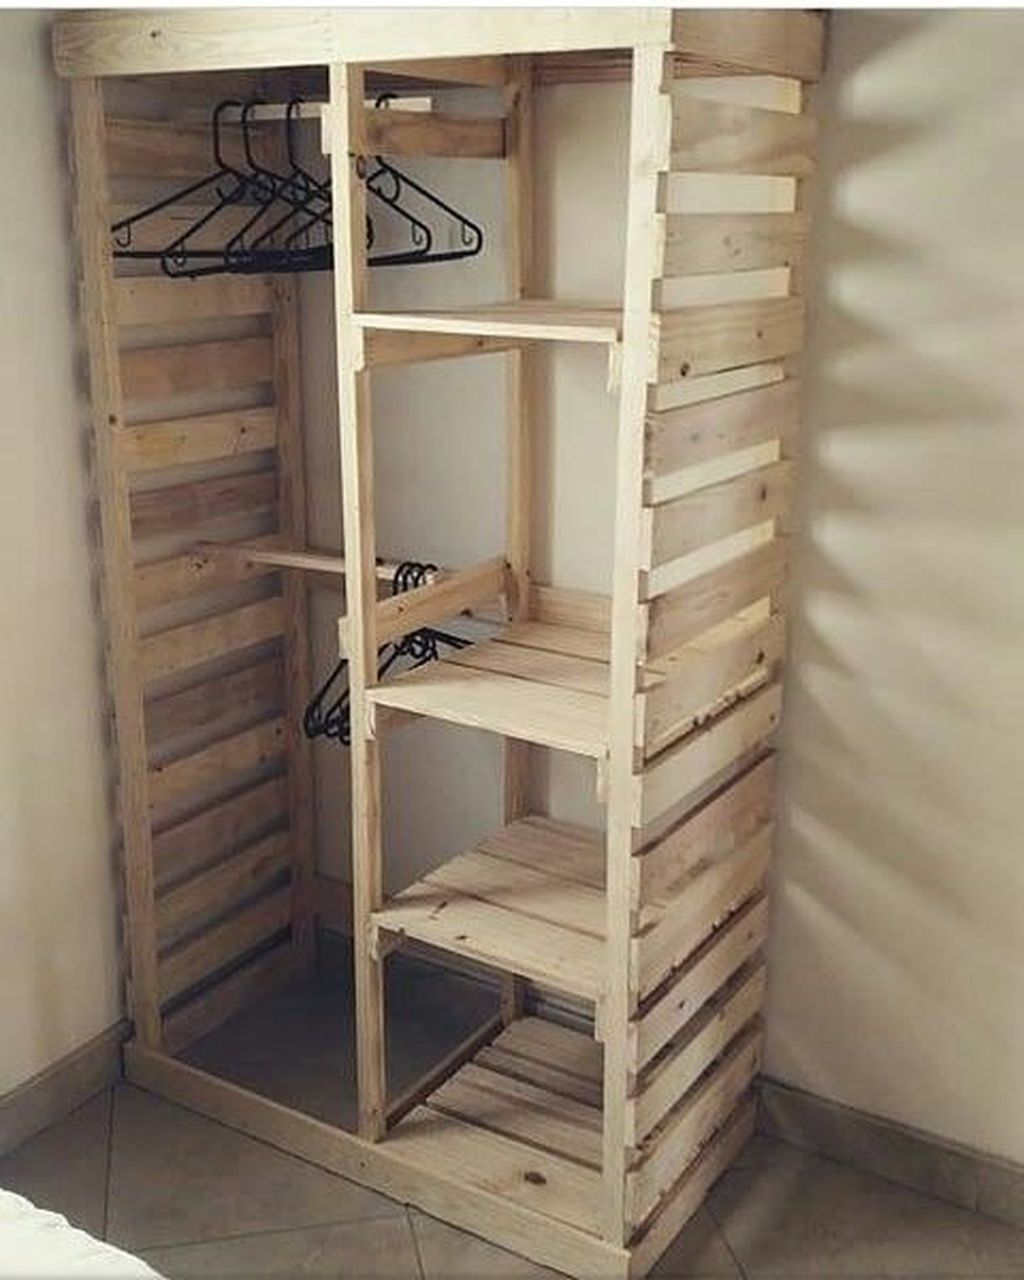 30+ Simple Diy Pallet Furniture Ideas To Inspire You - TRENDEDECOR - Stunning simple DIY pallet